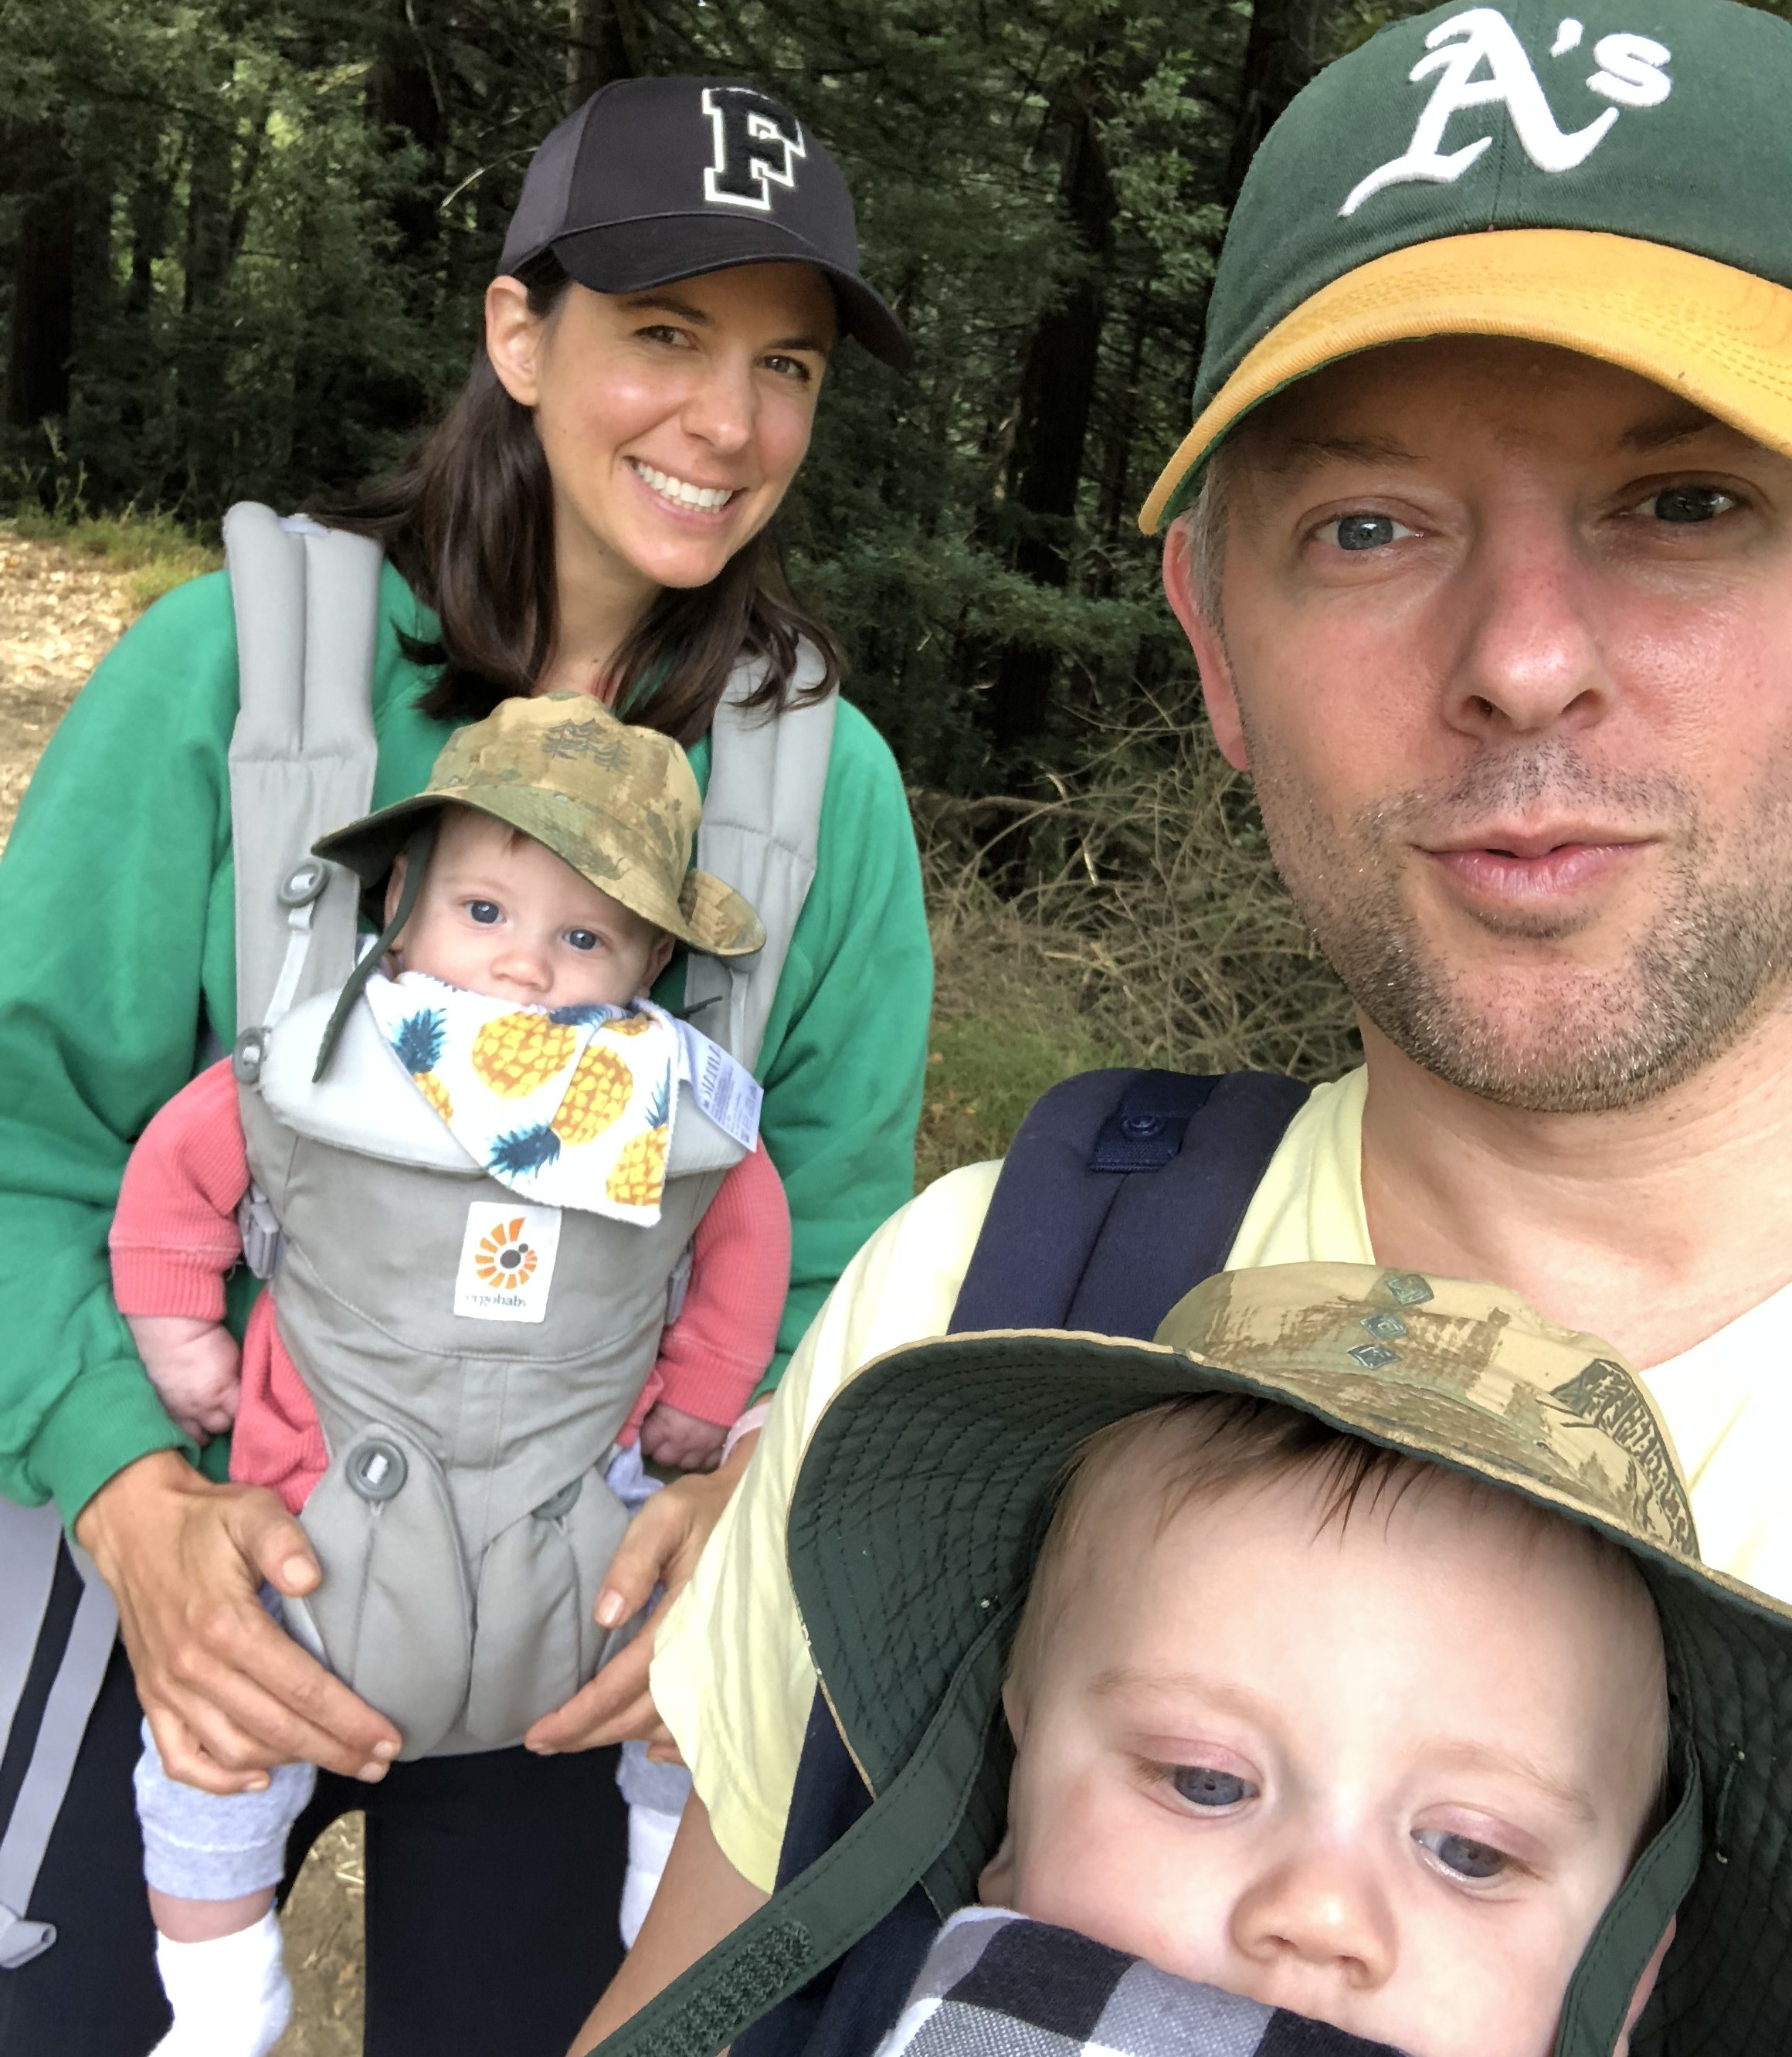 Braving a hike—another twin story for another time.